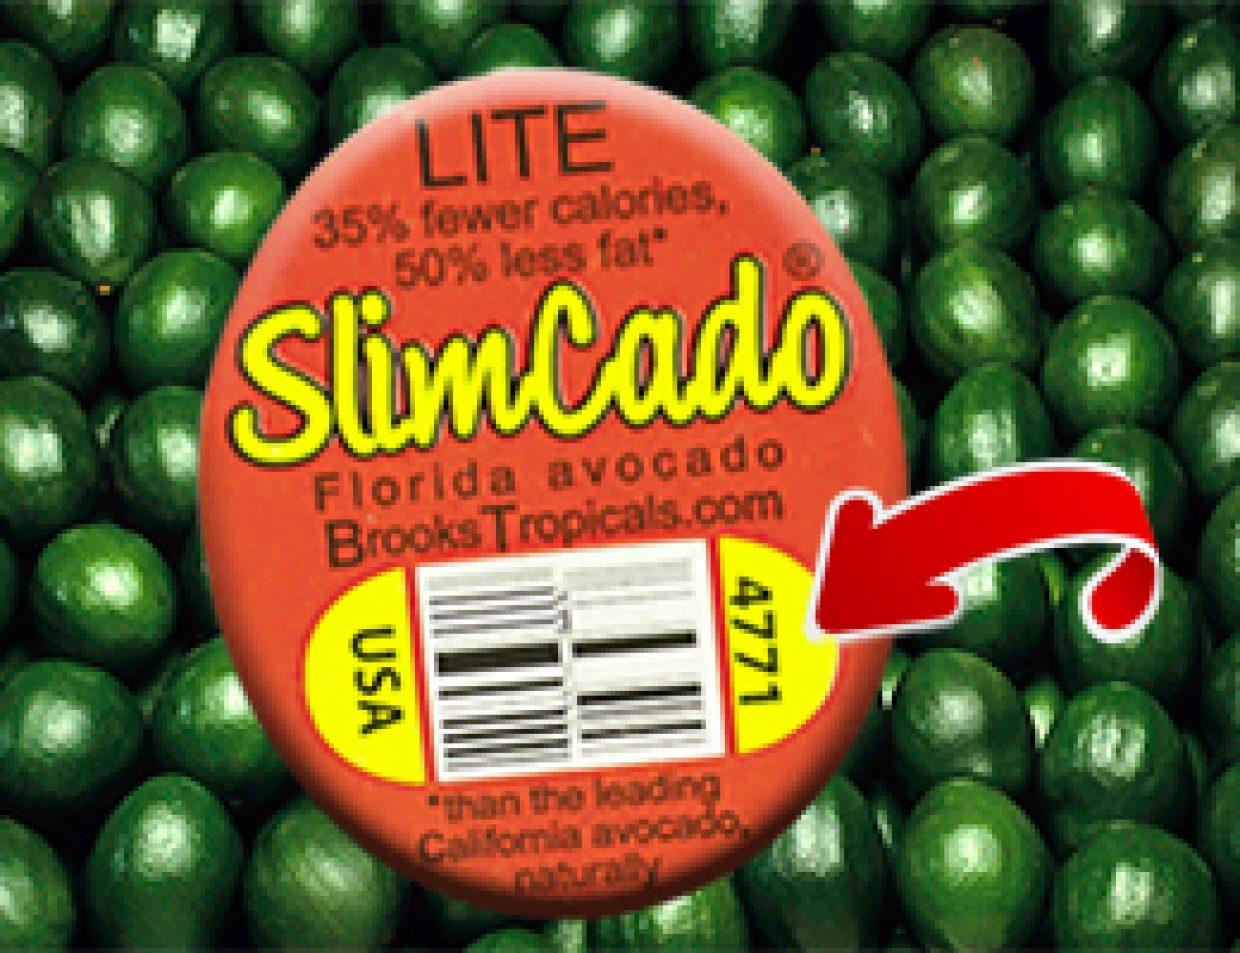 SlimCado's not GMO, here's how to tell with any produce